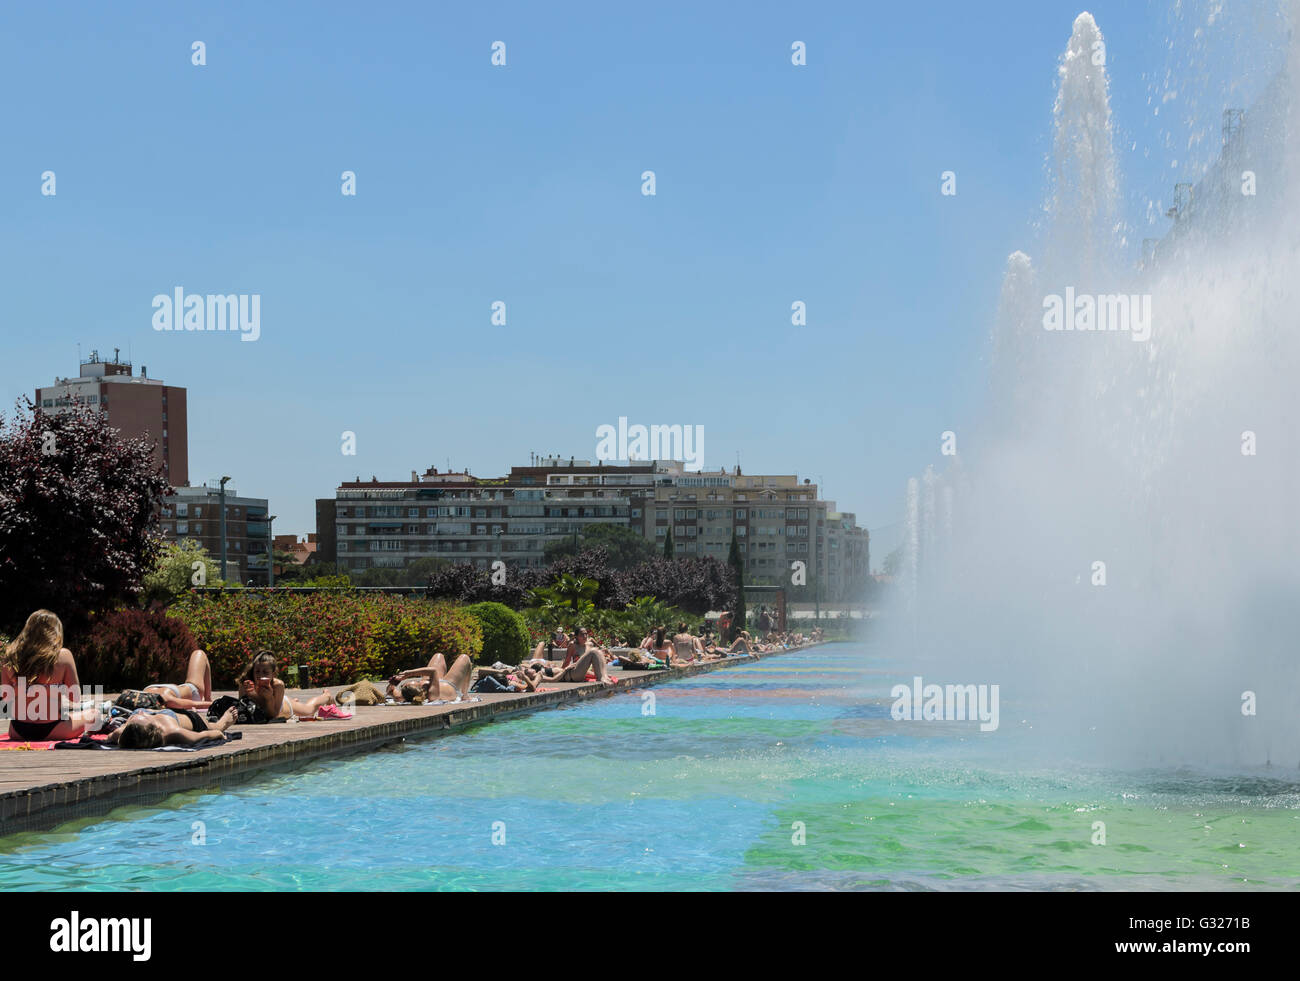 Madrid, Spain. 7th June 2016.  People view in a swimming pool of Canal Isabel II due to the hot weather, Madrid, - Stock Image